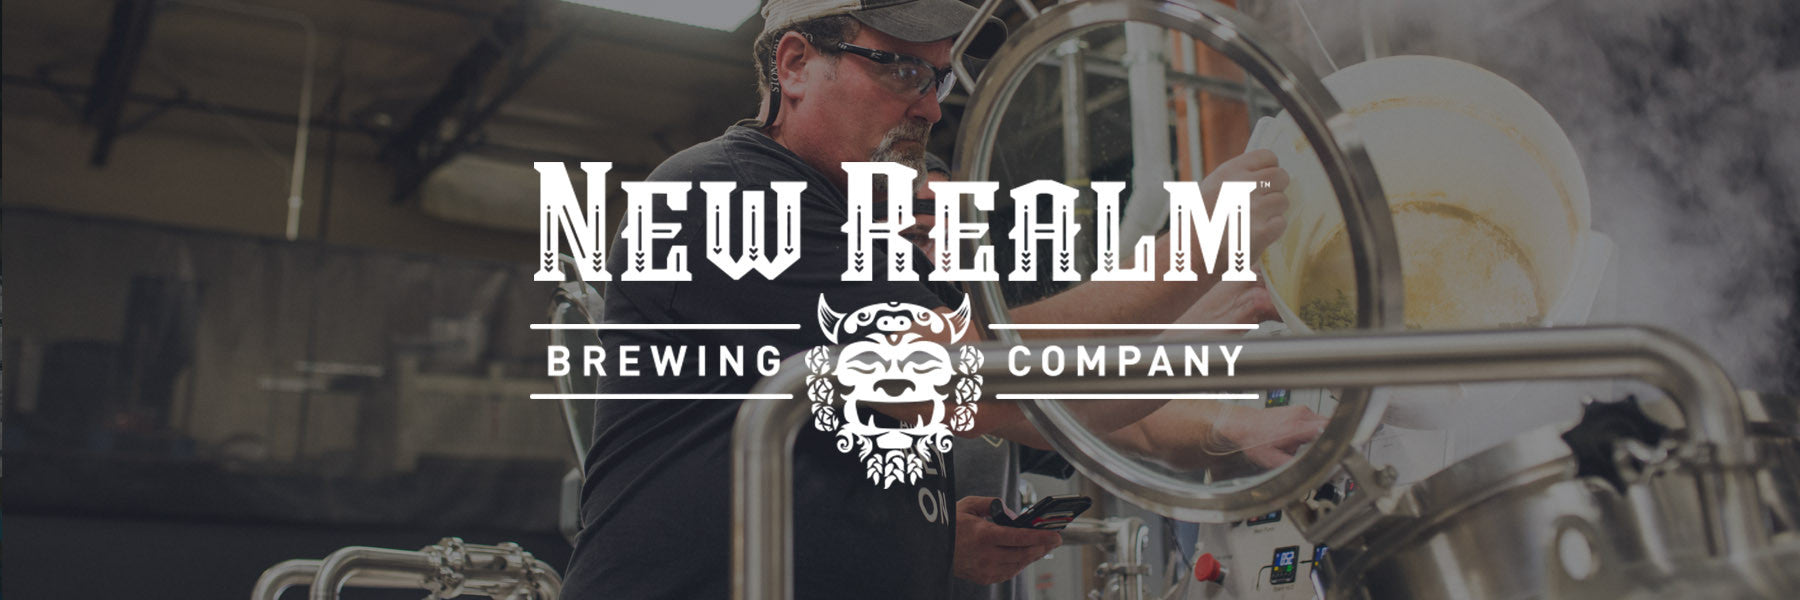 New Realm Brewing Co. | 5 bbl Pilot